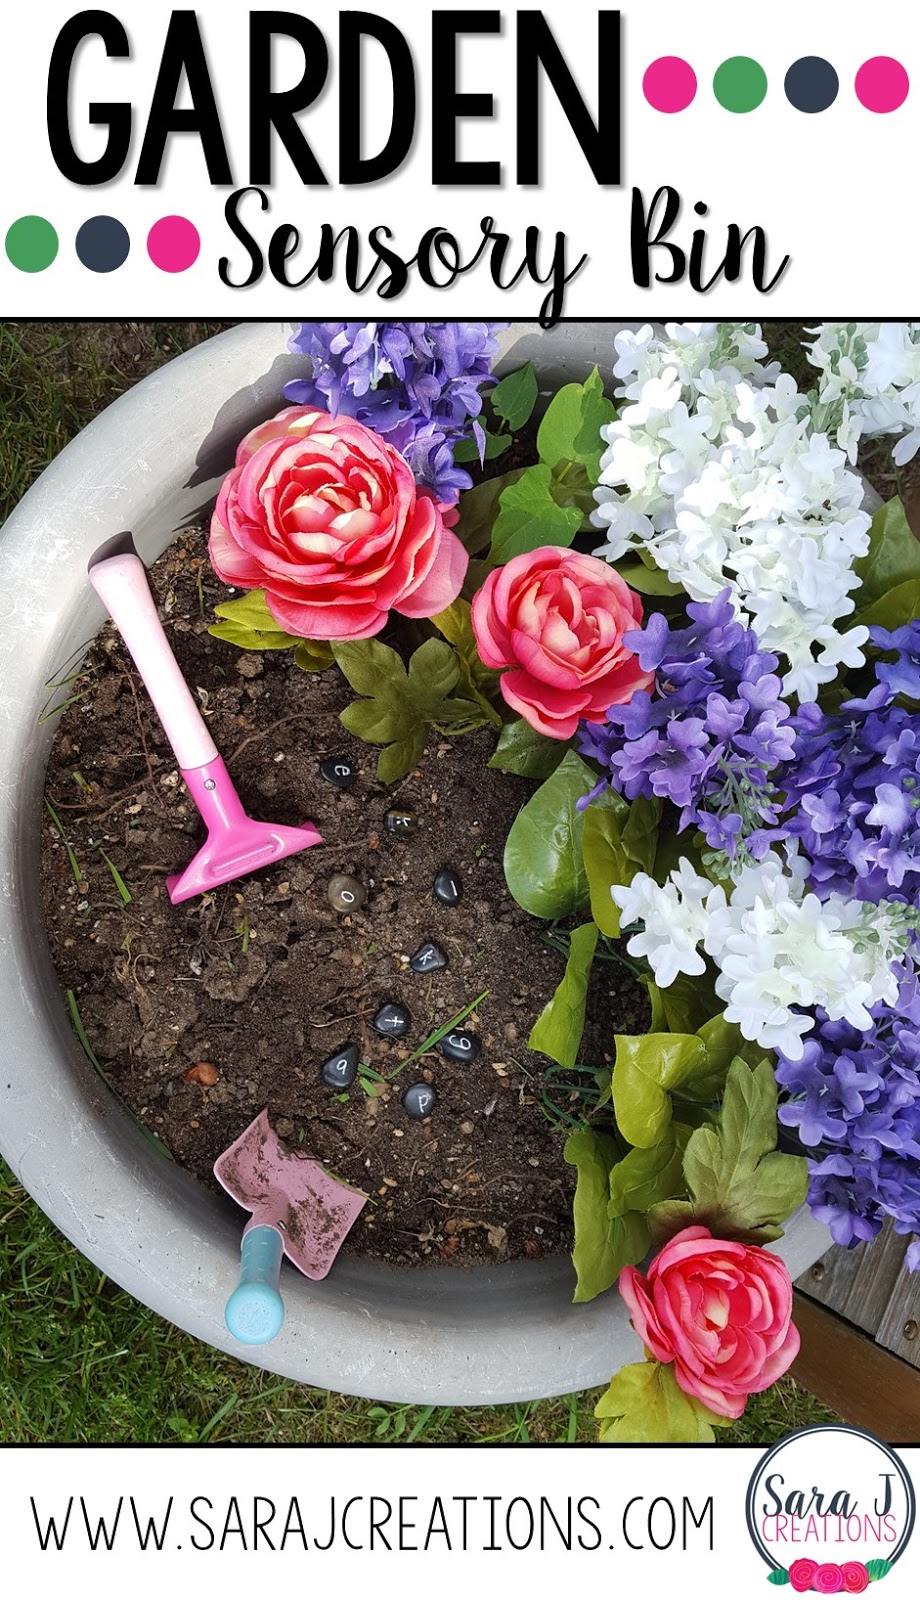 Love this cute Garden Sensory bin for preschool or even toddlers. Such a fun way to build fine motor and sensory skills while playing with flowers.